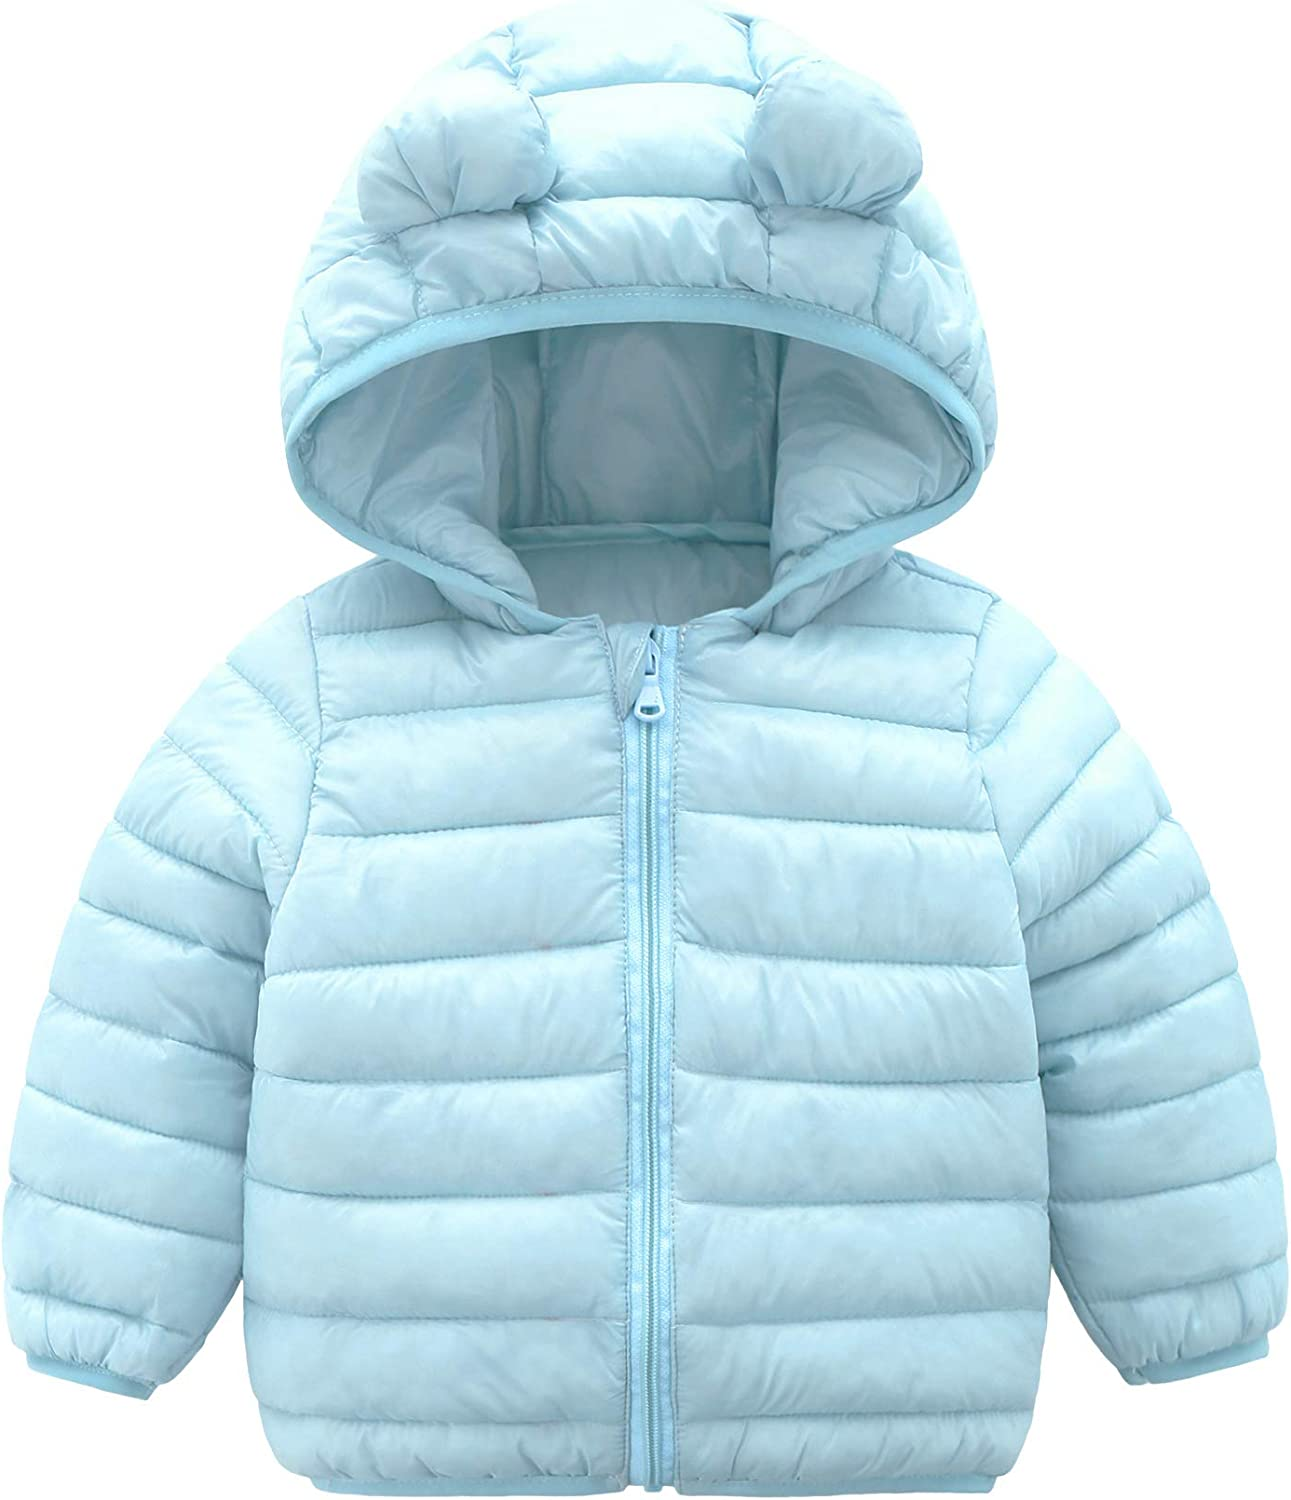 CECORC Winter Coats for Kids with Over item handling Puffer NEW before selling Hoods Light Ja Padded